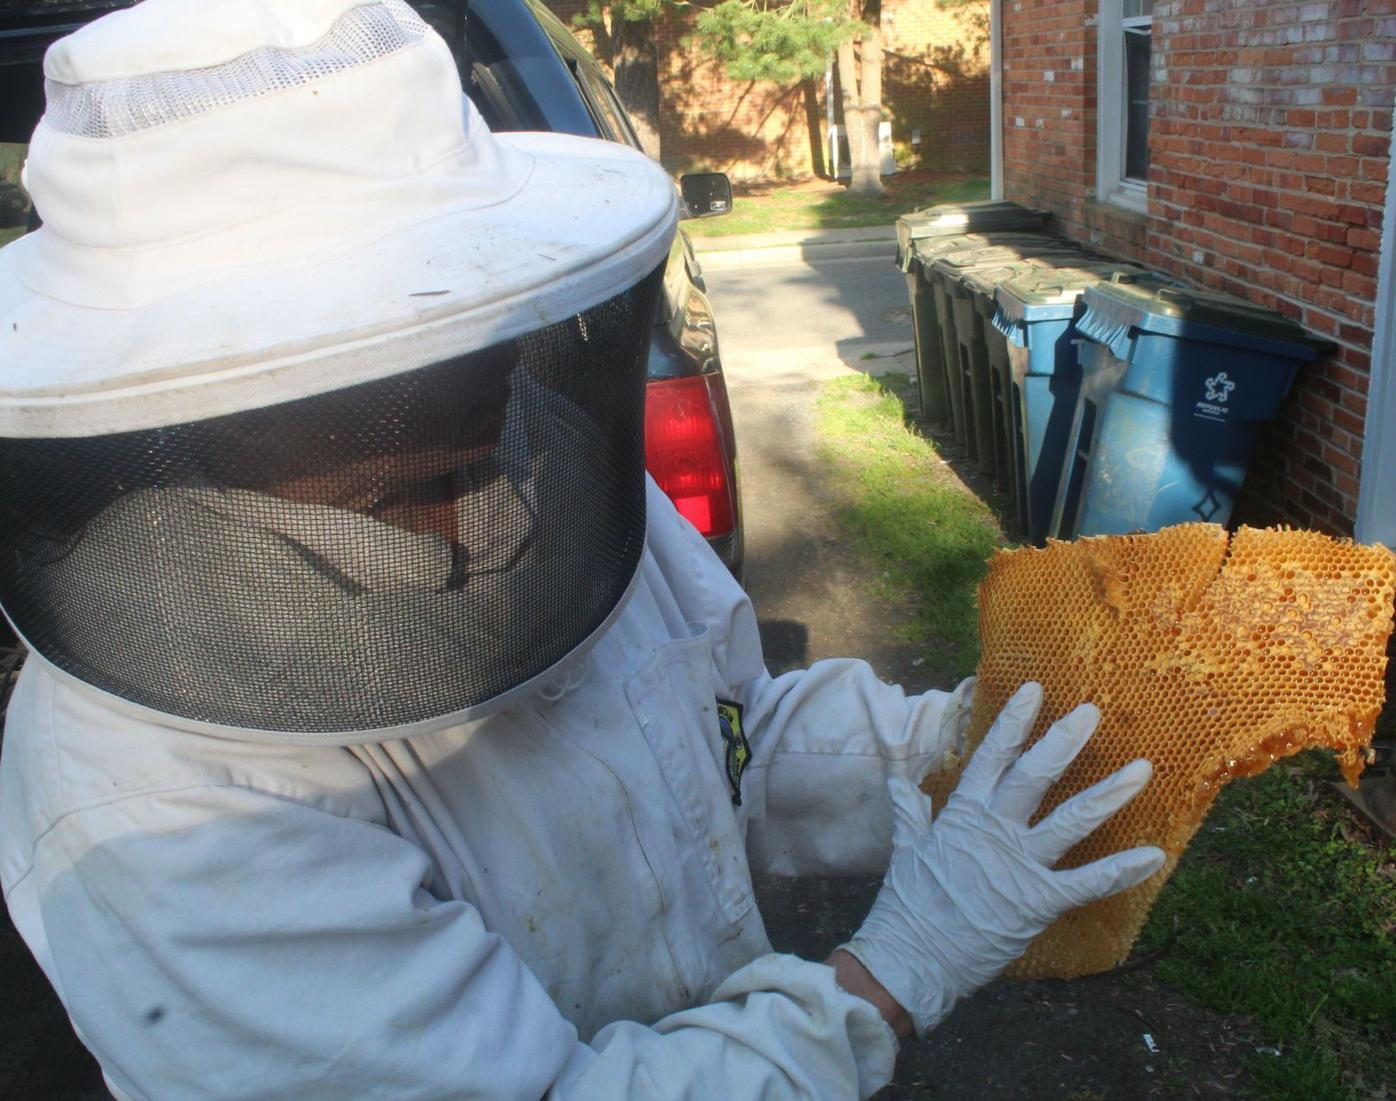 Beekeeper suit and hive piece